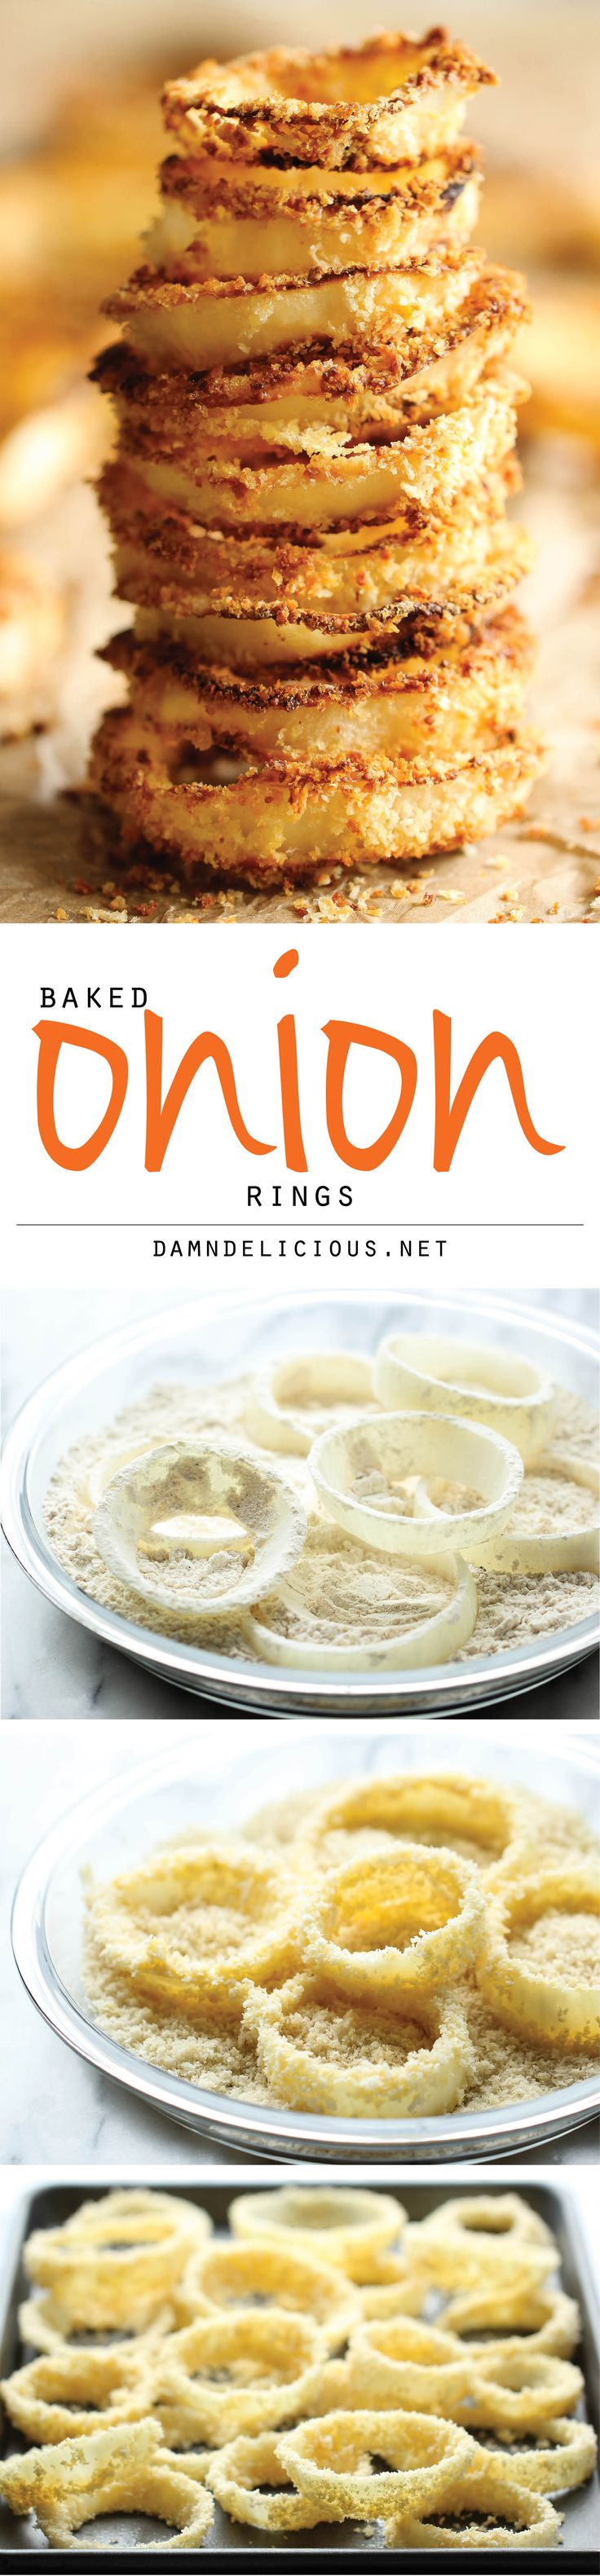 Bluebird's Vidalia Onion Board: http://www.pinterest.com/bluebirdmarket/vidalia-onions-leeks-chives-scallions/ Oven Baked Onion Rings - No need to deal with hot oil - these onion rings are easily baked to crisp-perfection right in the oven!